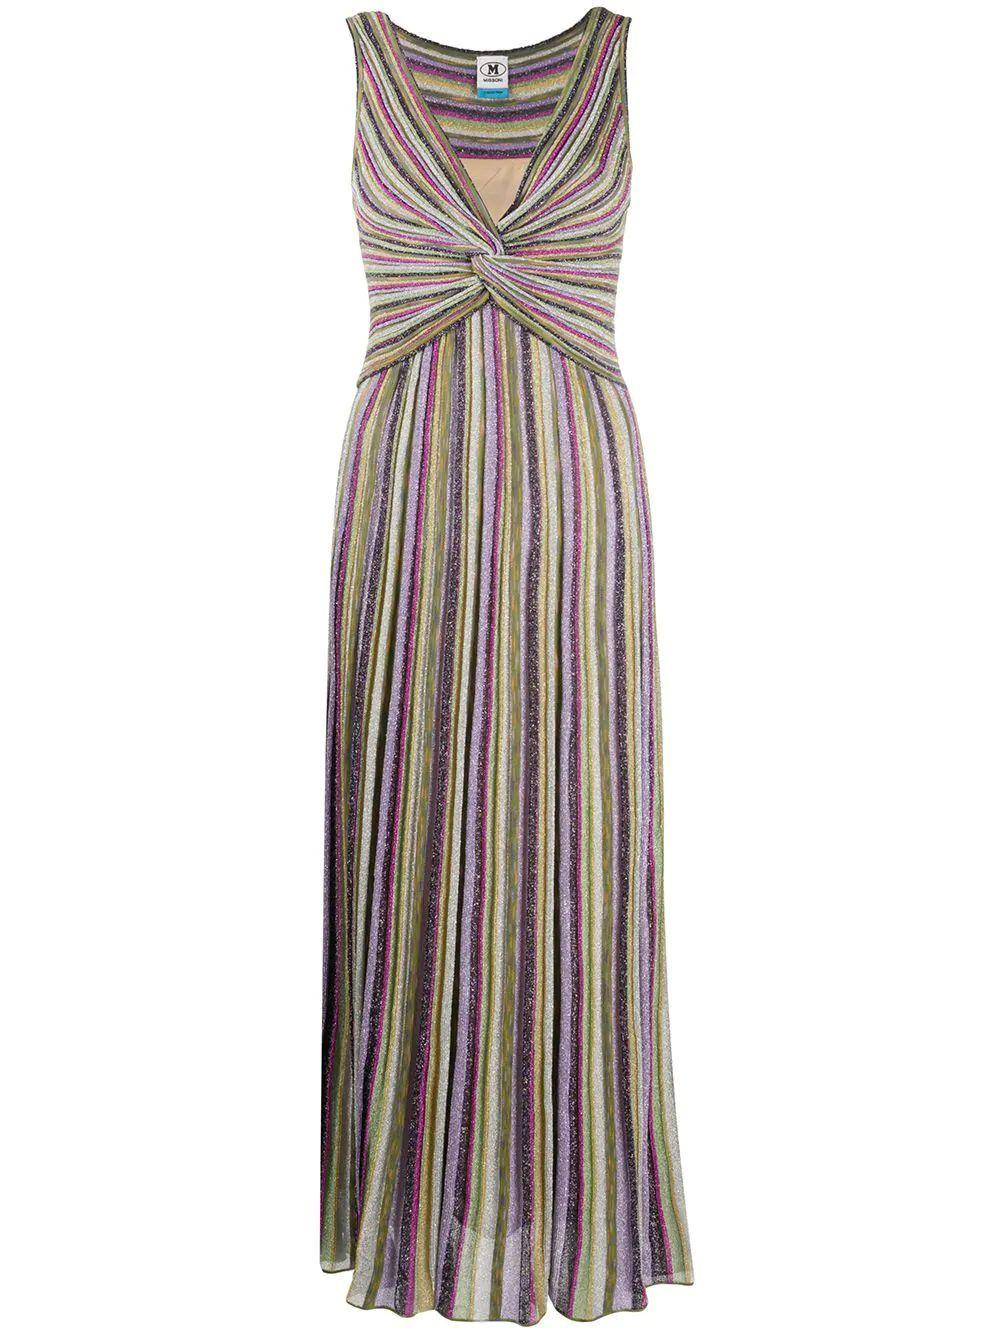 Striped Knit Maxi Dress Item # 2DG00465-2K006R